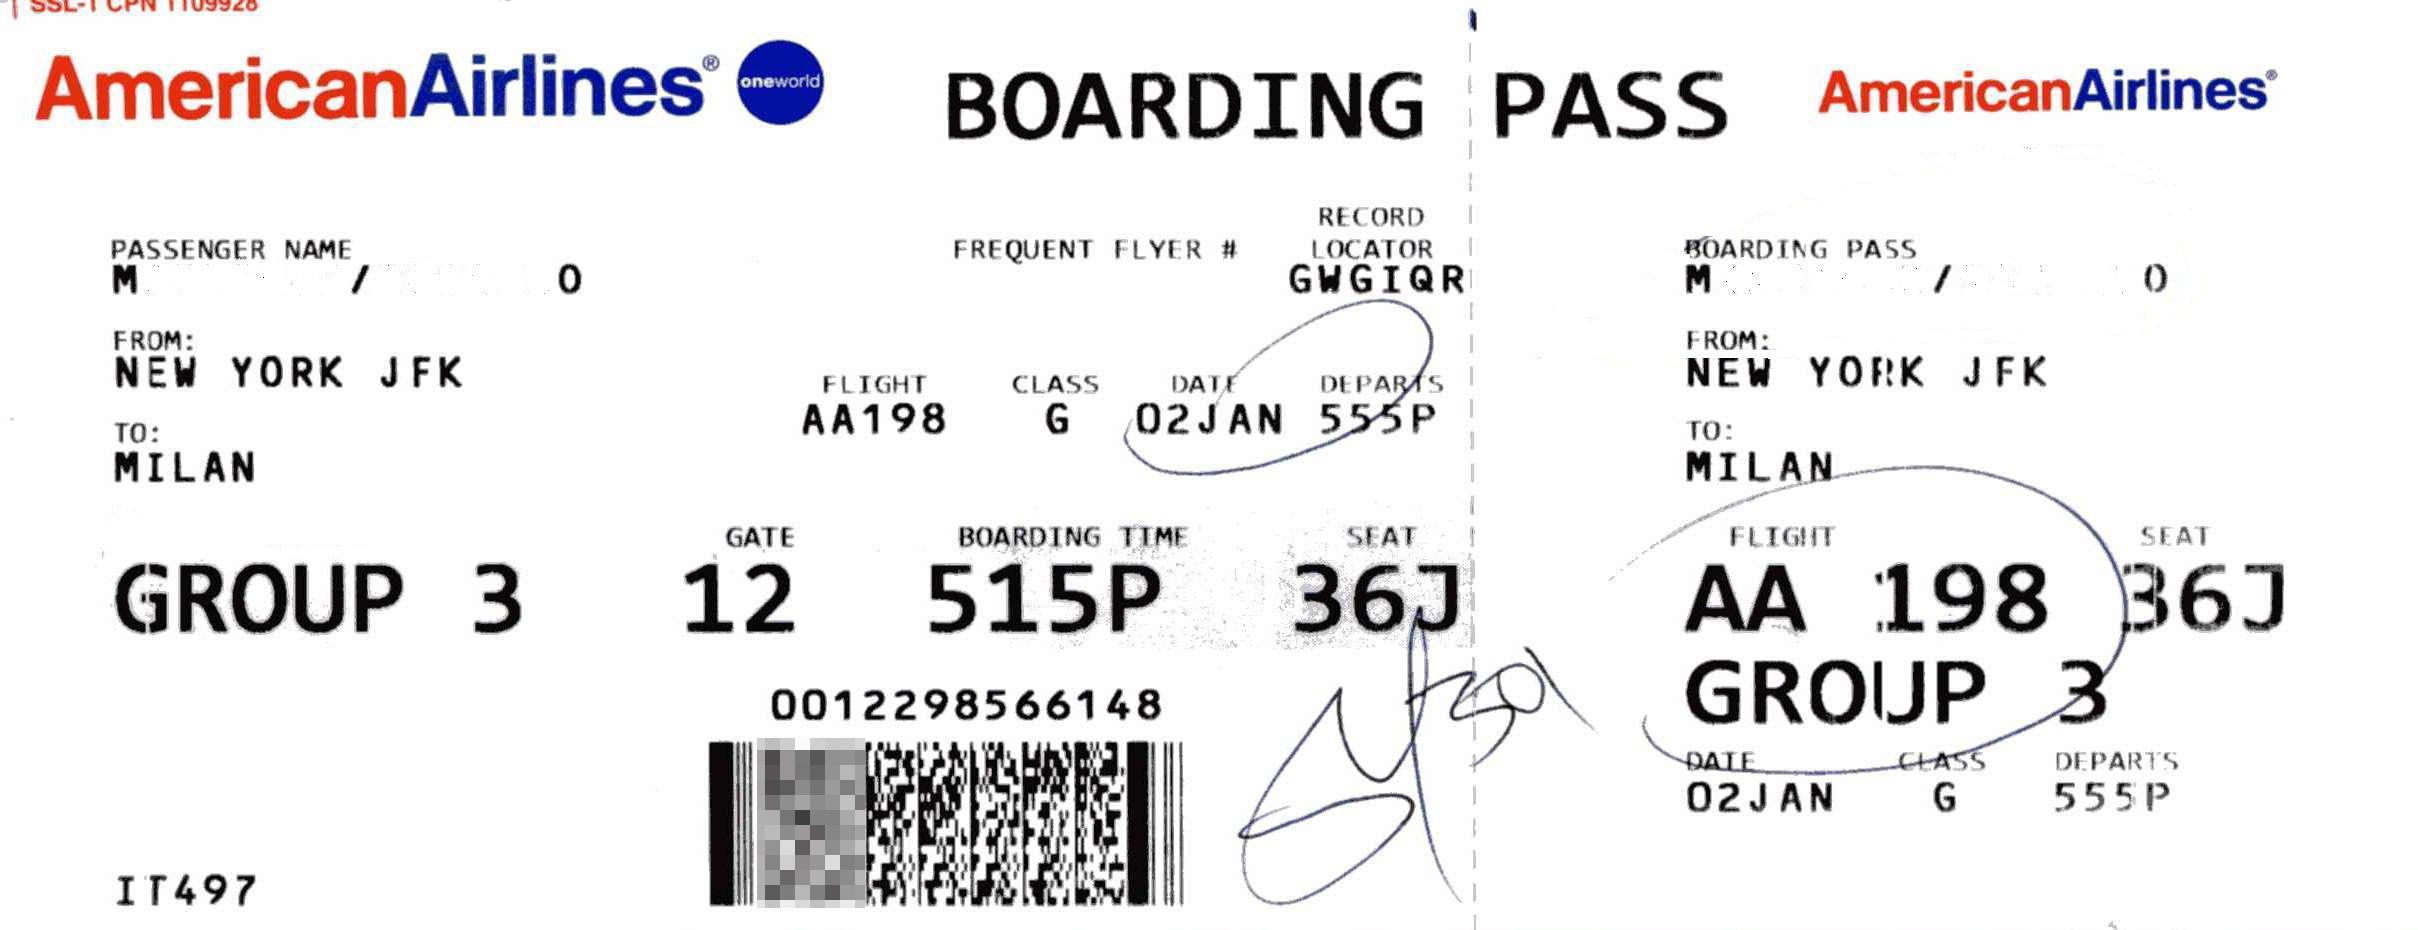 american_airlines_boarding_pass_aa_198